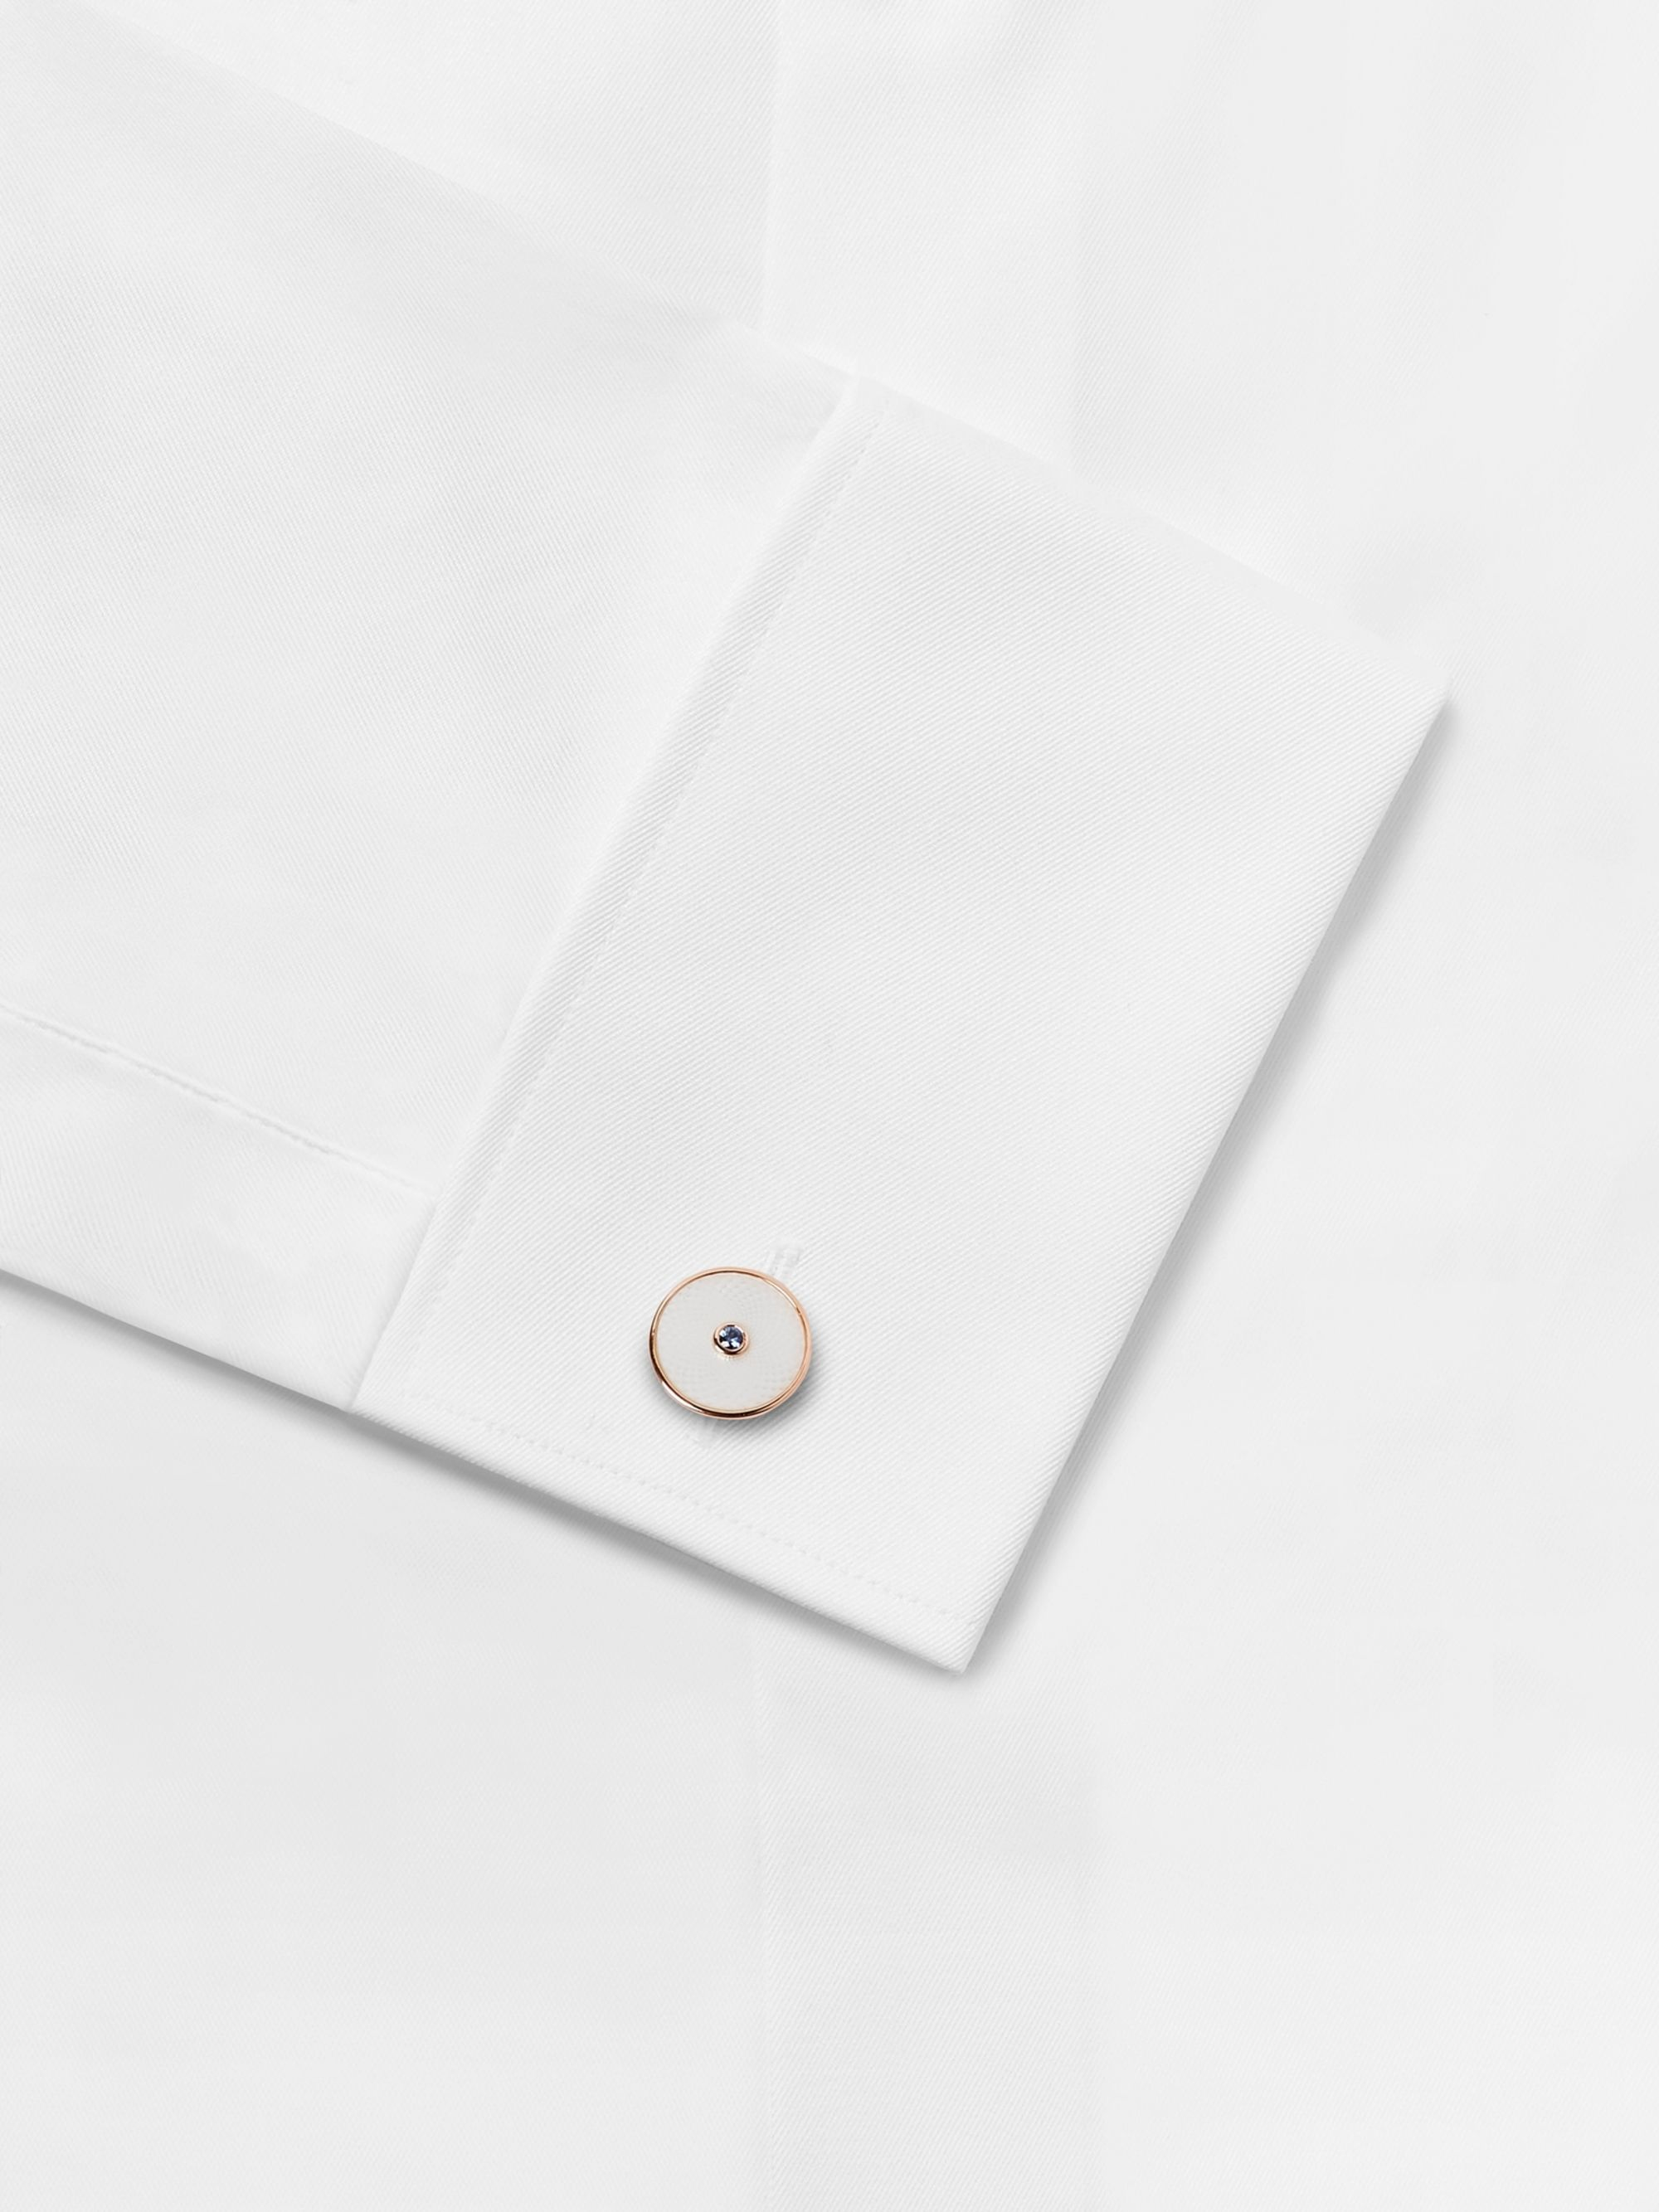 Deakin & Francis Dreamcatcher Rose Gold-Plated, Mother-of-Pearl and Sapphire Cufflinks